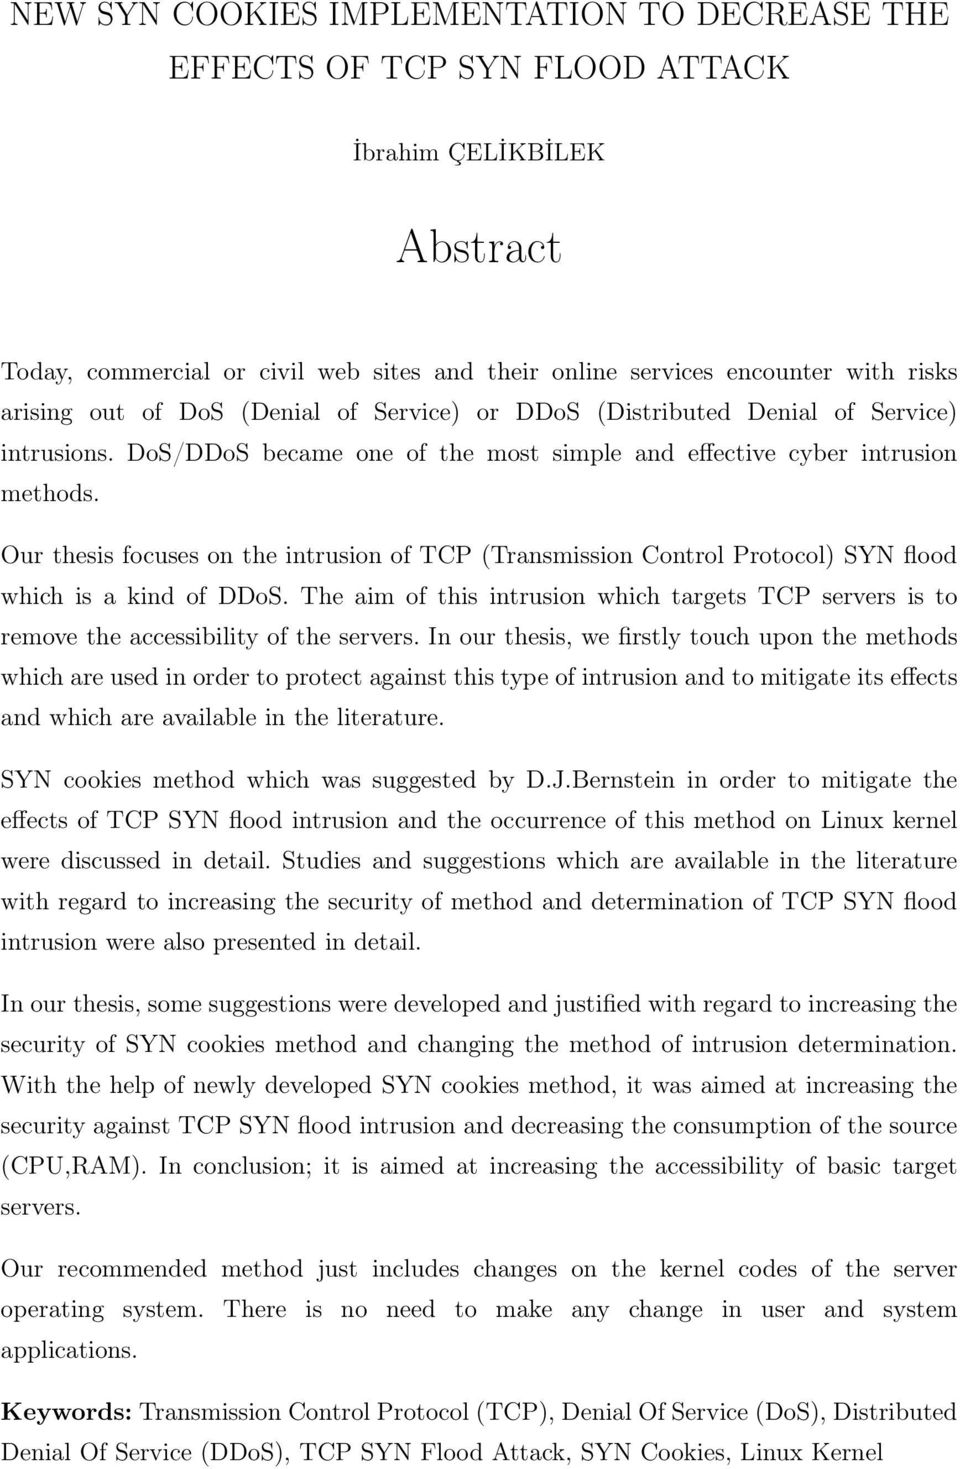 Our thesis focuses on the intrusion of TCP (Transmission Control Protocol) SYN flood which is a kind of DDoS.